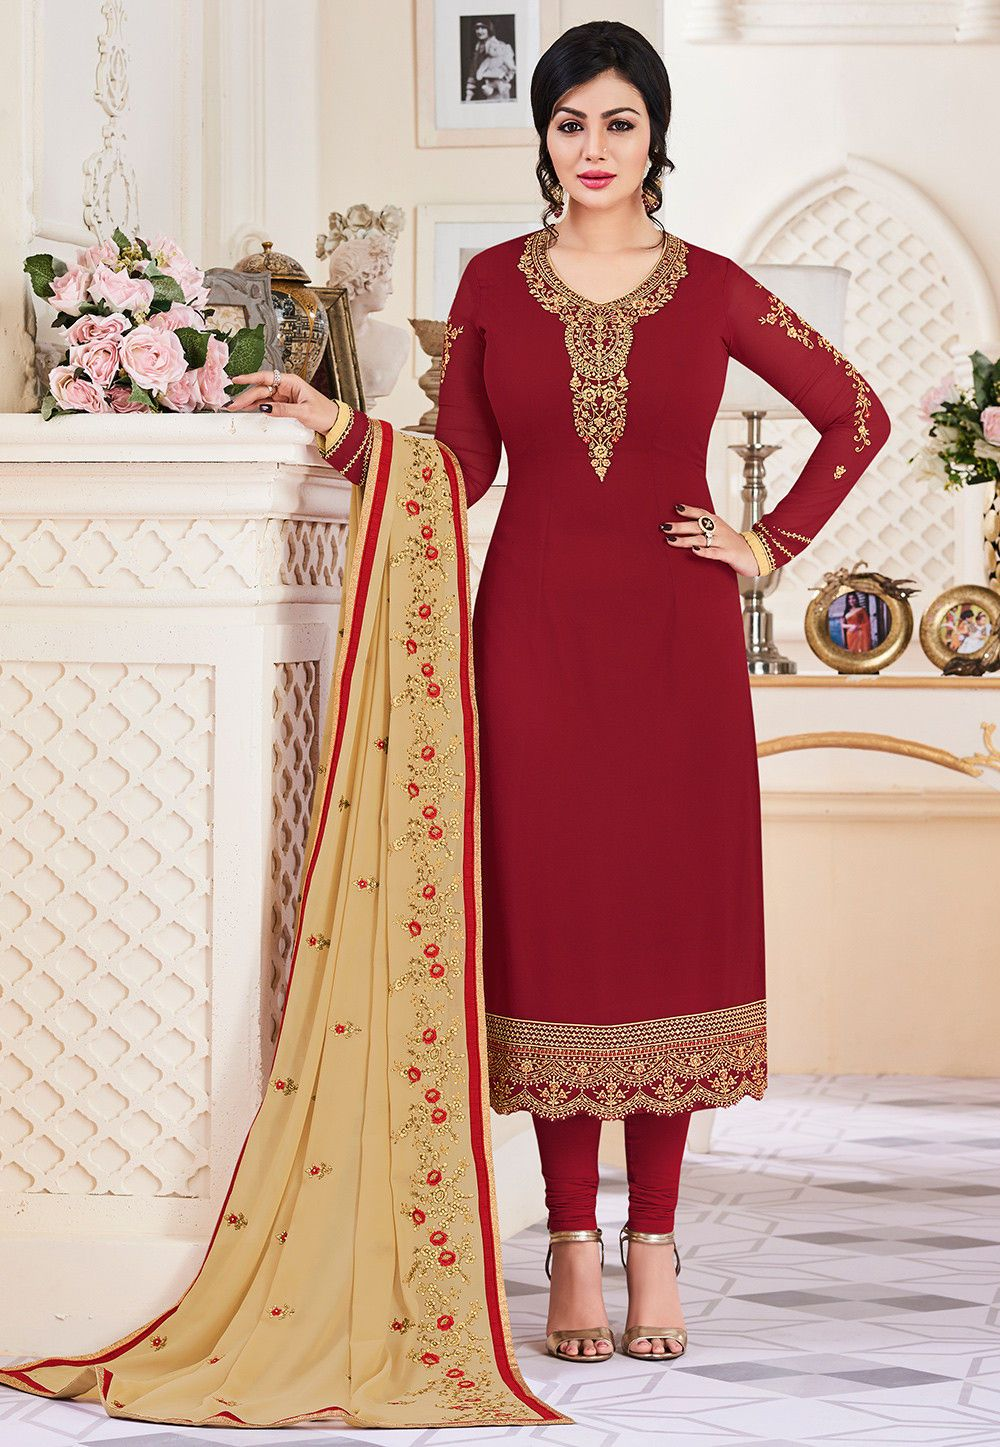 Buy Embroidered Georgette Straight Suit In Maroon Online Item Code Kqu1025 Color Red Occasion Fe Shadi Dresses Designer Dresses Indian Party Wear Dresses